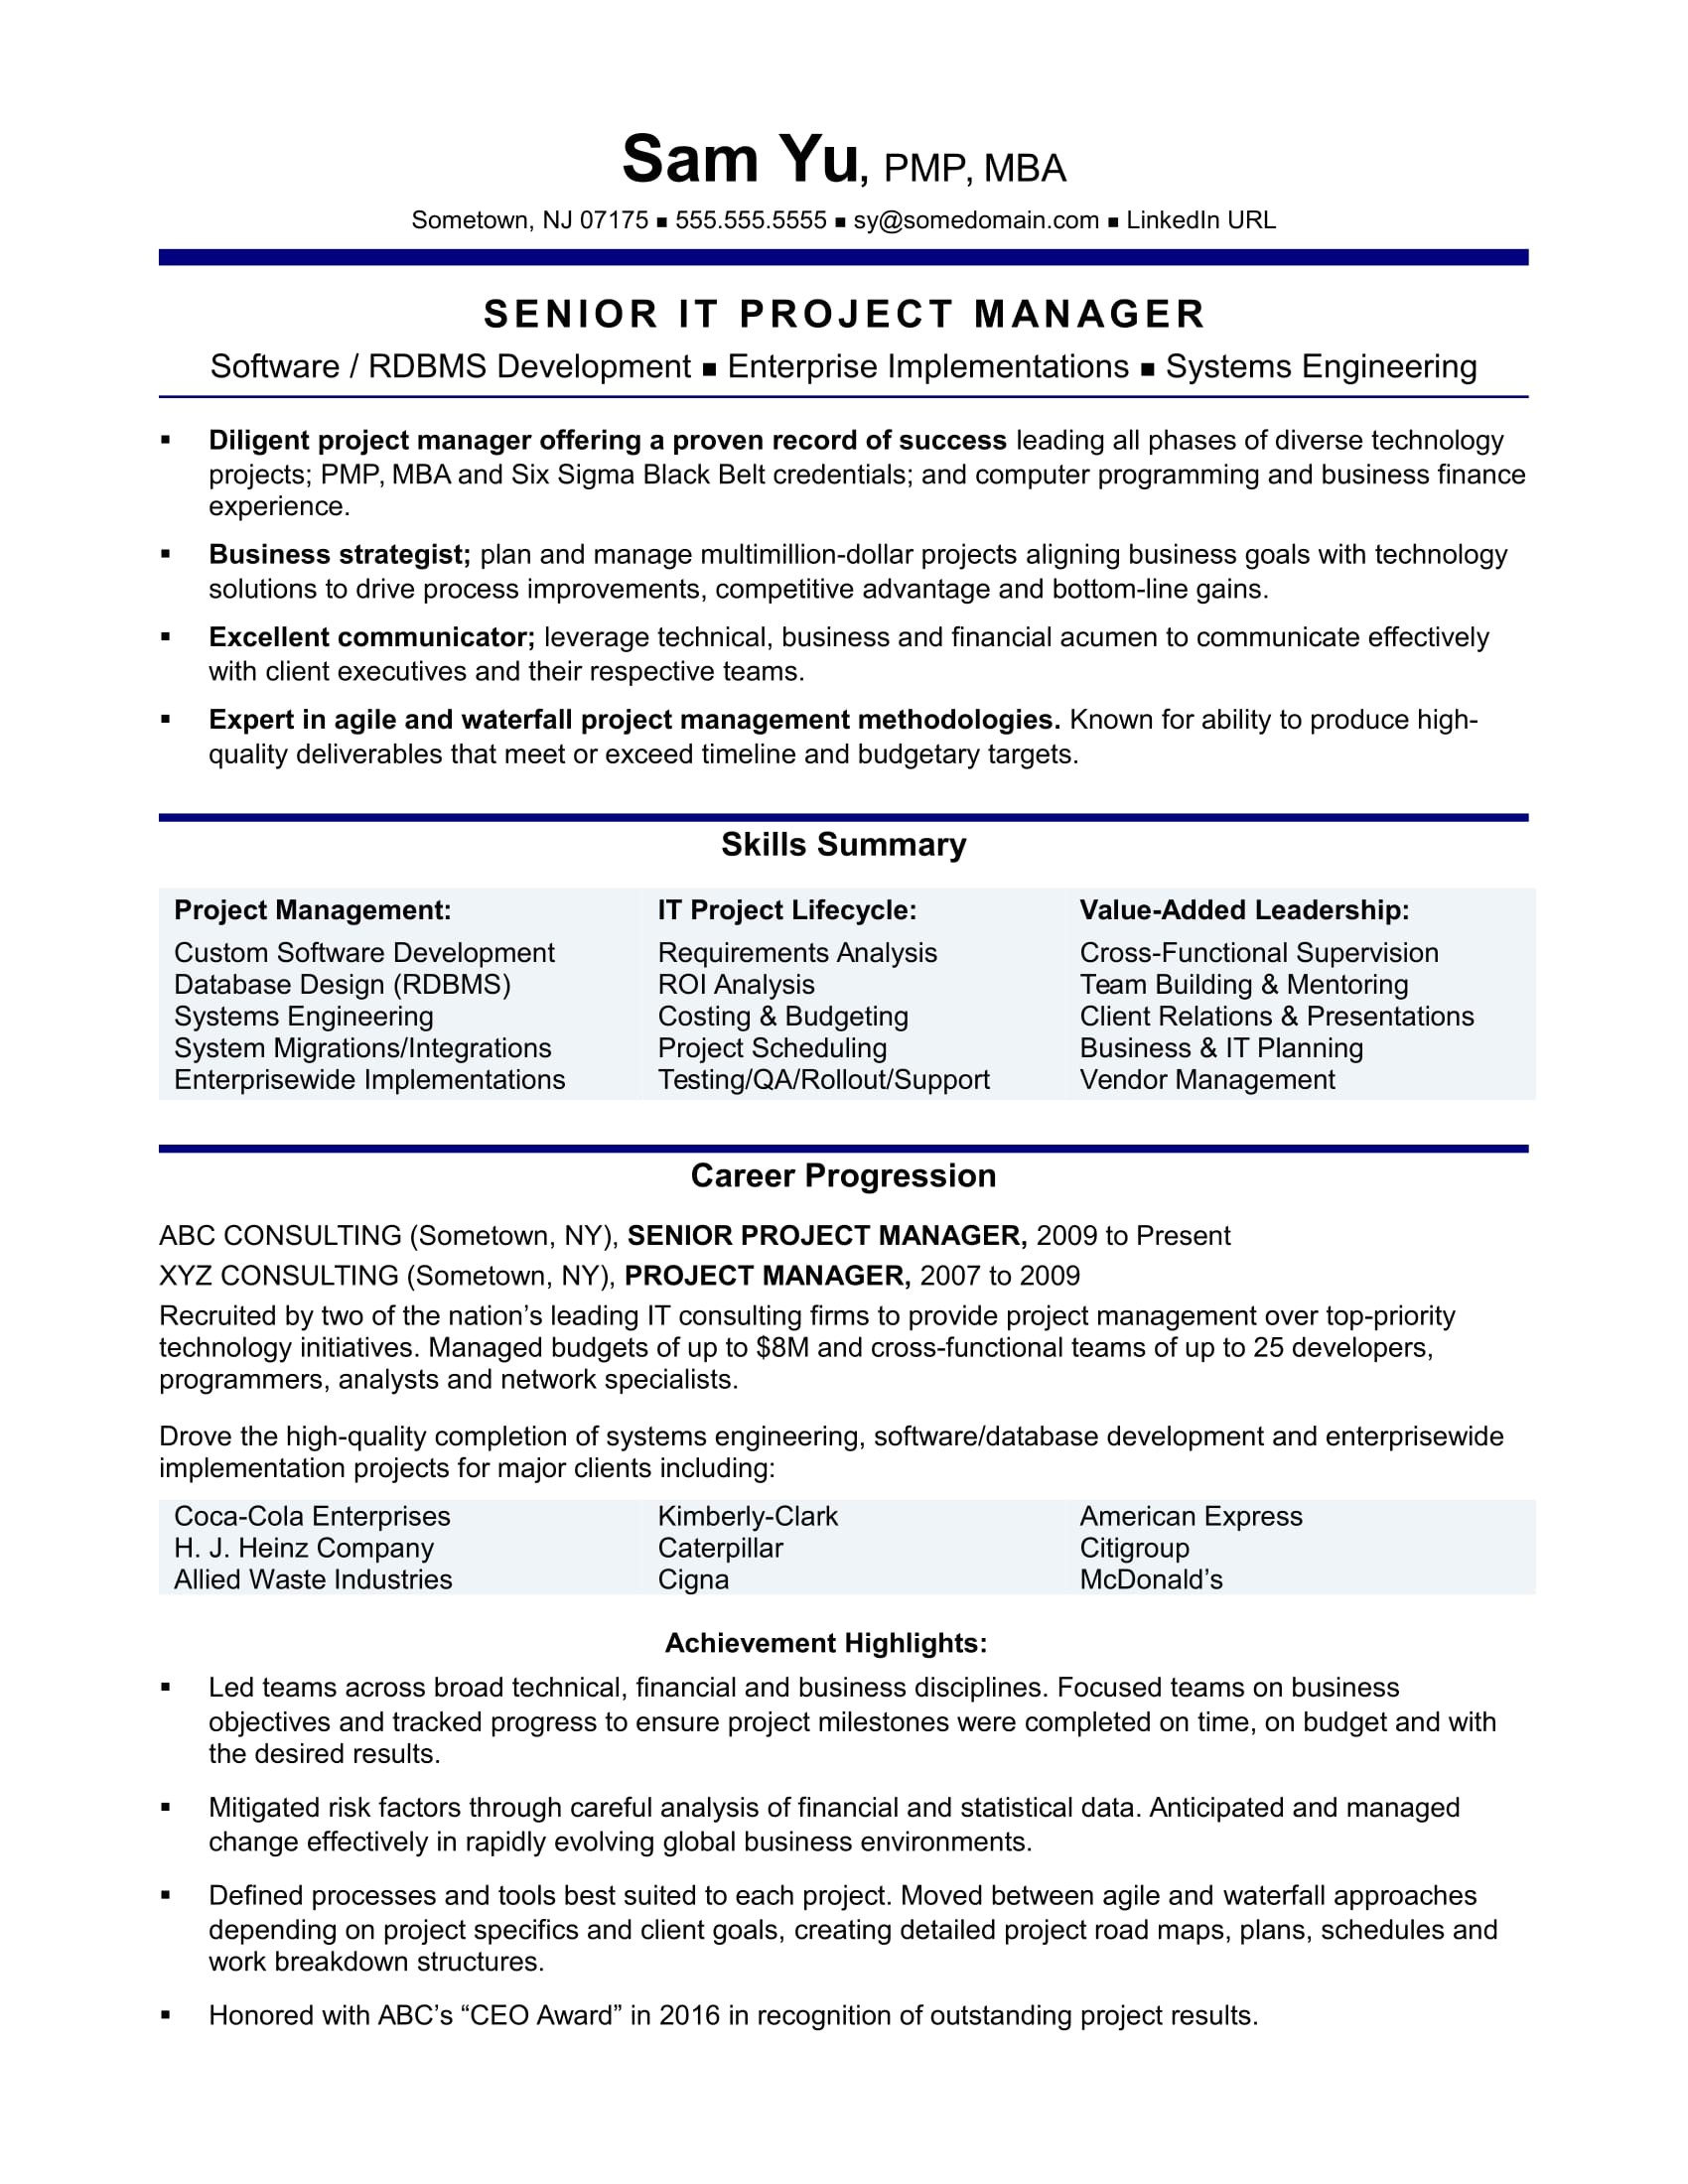 Resume Template for Project Manager Experienced It Project Manager Resume Sample Monster Com